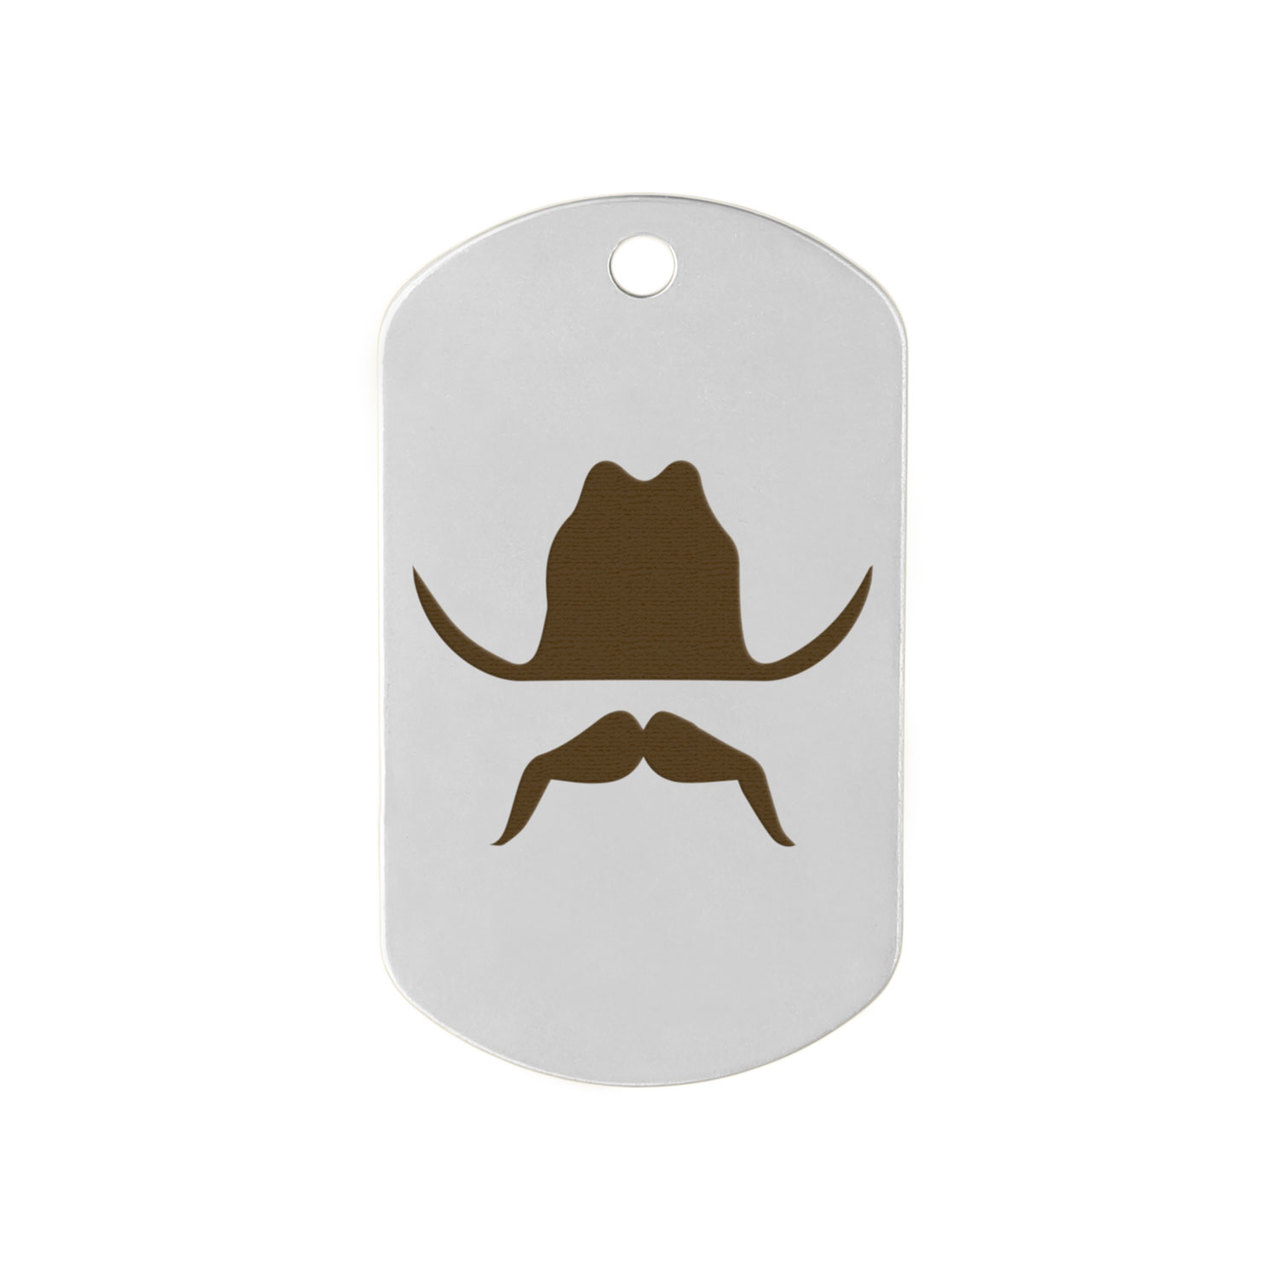 Mustache Design Dog Tags - Cowboy Mustache on Stainless Steel